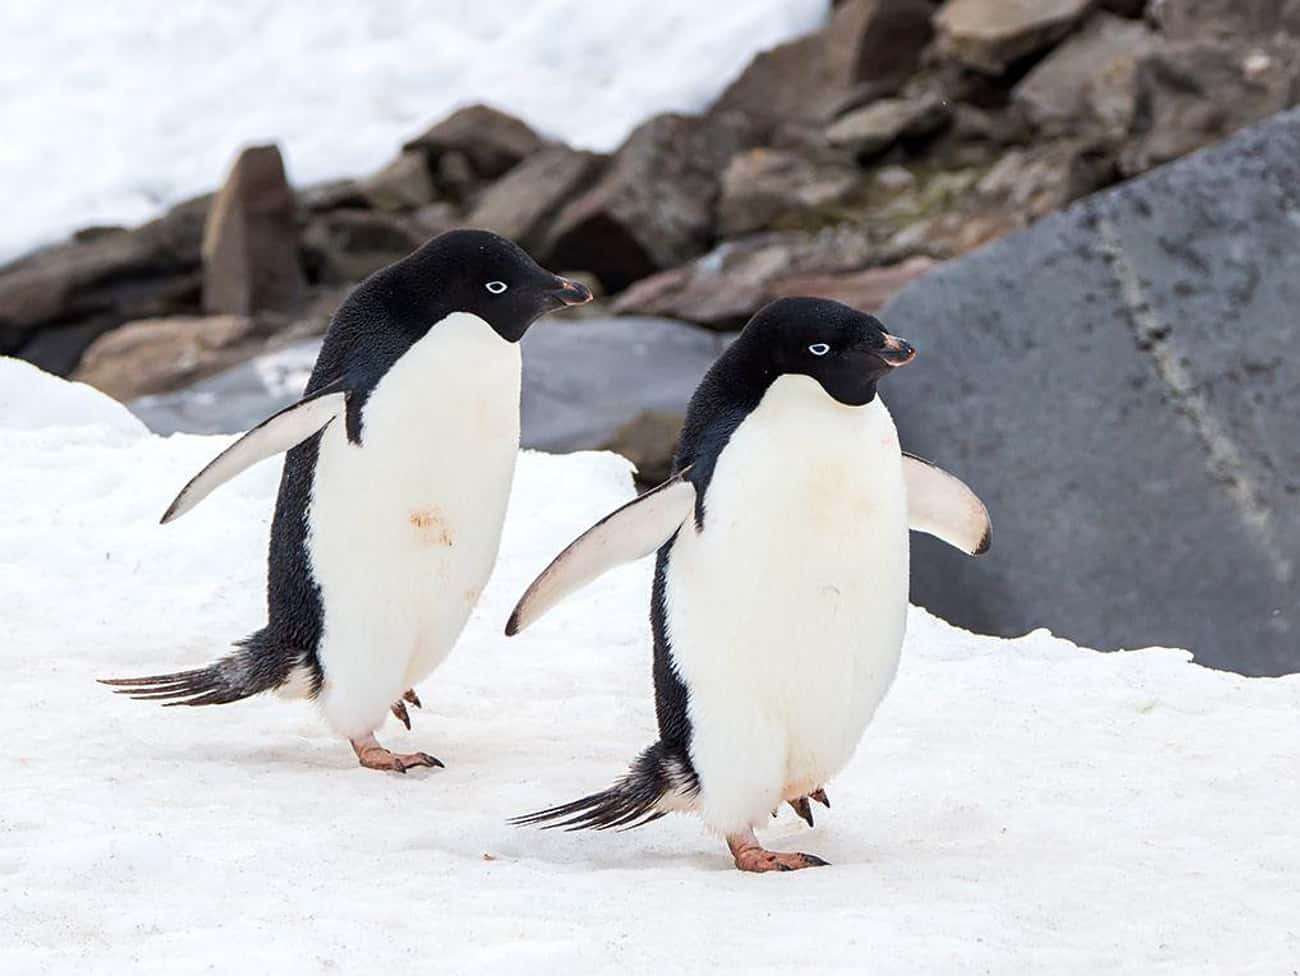 They Engage In Necrophilia is listed (or ranked) 1 on the list 10 Borderline Terrifying Facts About The Love Life Of Penguins